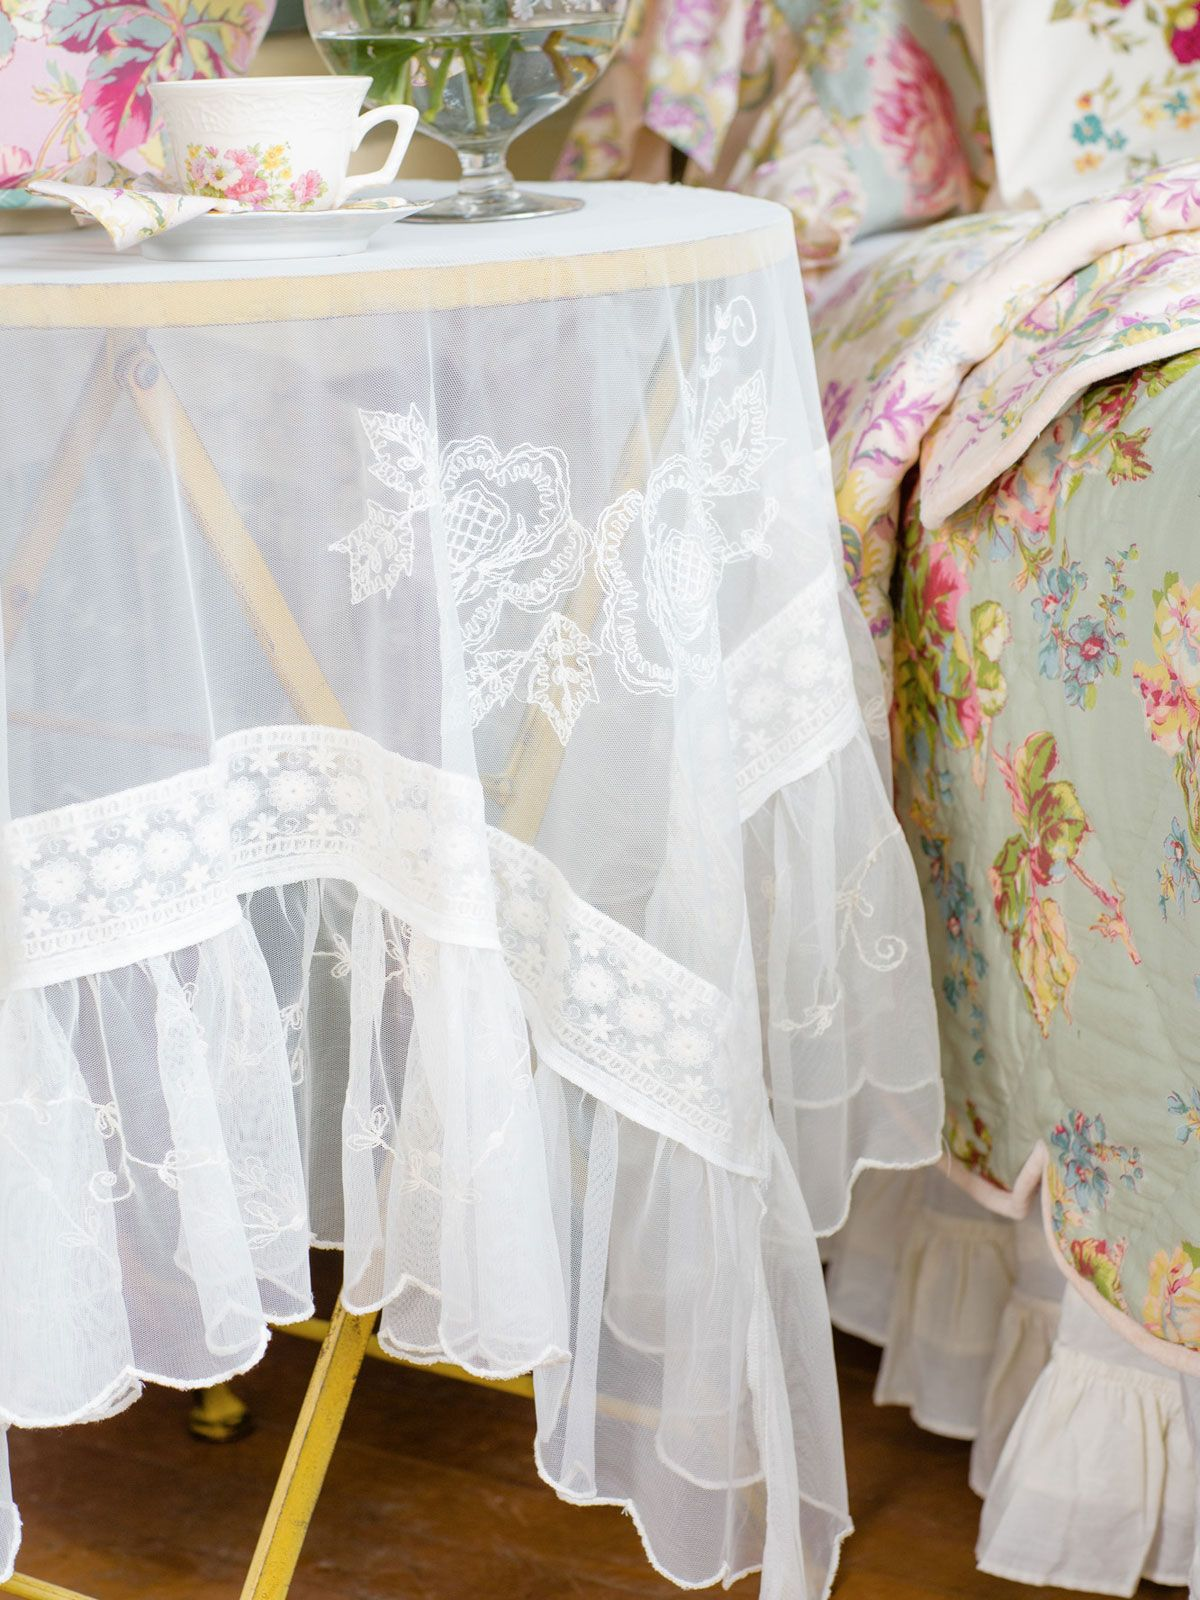 Angelic Embroidered Tablecloth | Table Linens & Kitchen, Tablecloths ...